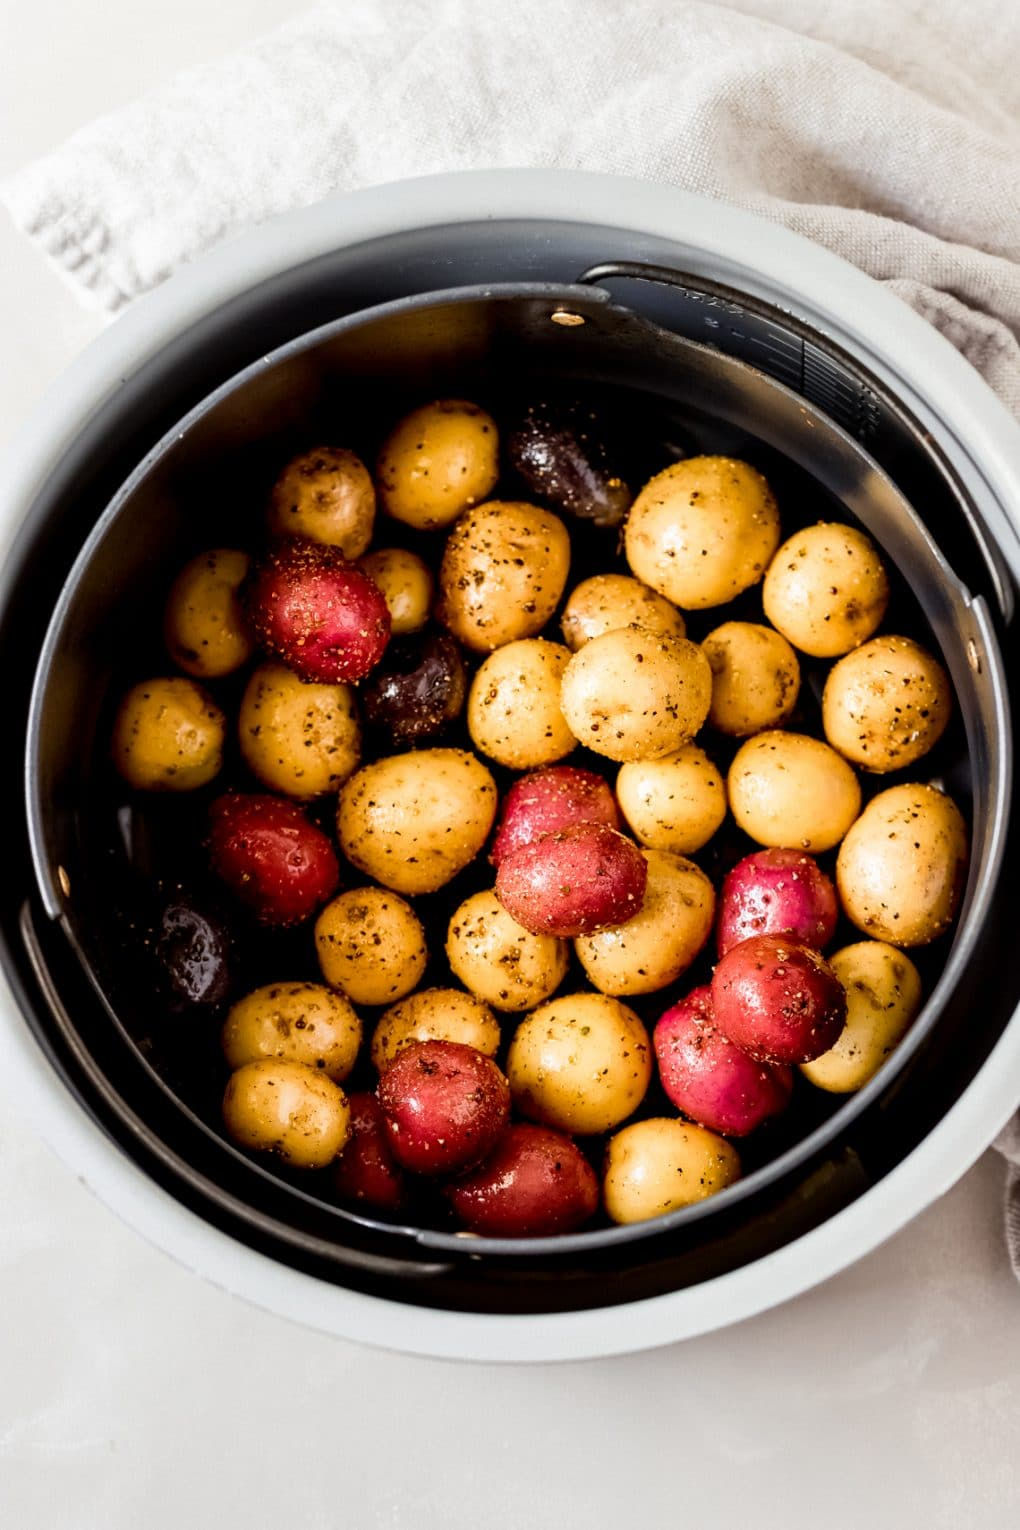 oiled baby potatoes in an air fryer basket